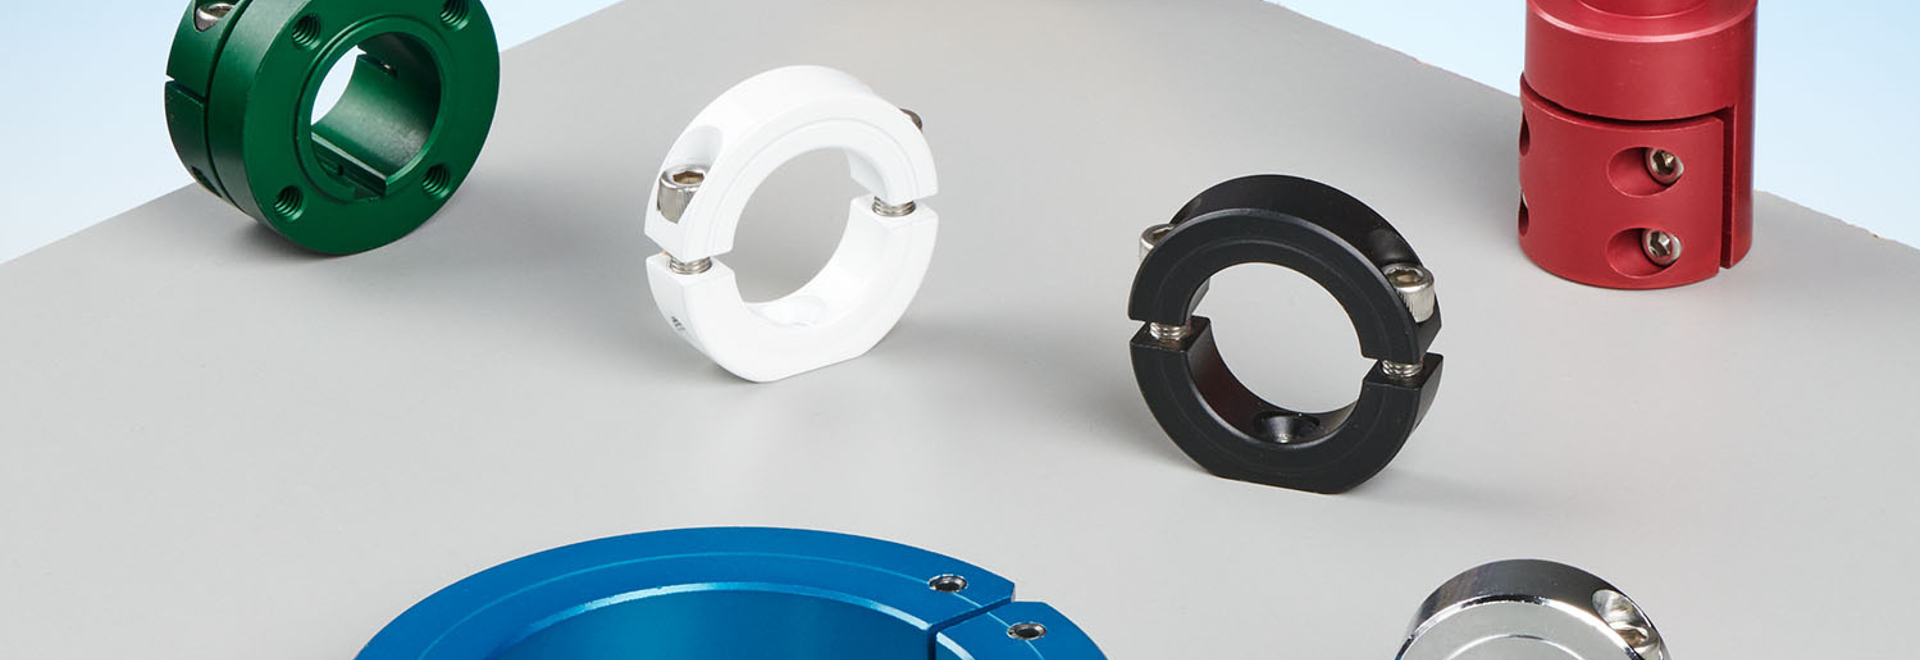 Stafford Shaft Collars & Couplings are priced according to design requirements and quantity. Price quotations are available upon request.